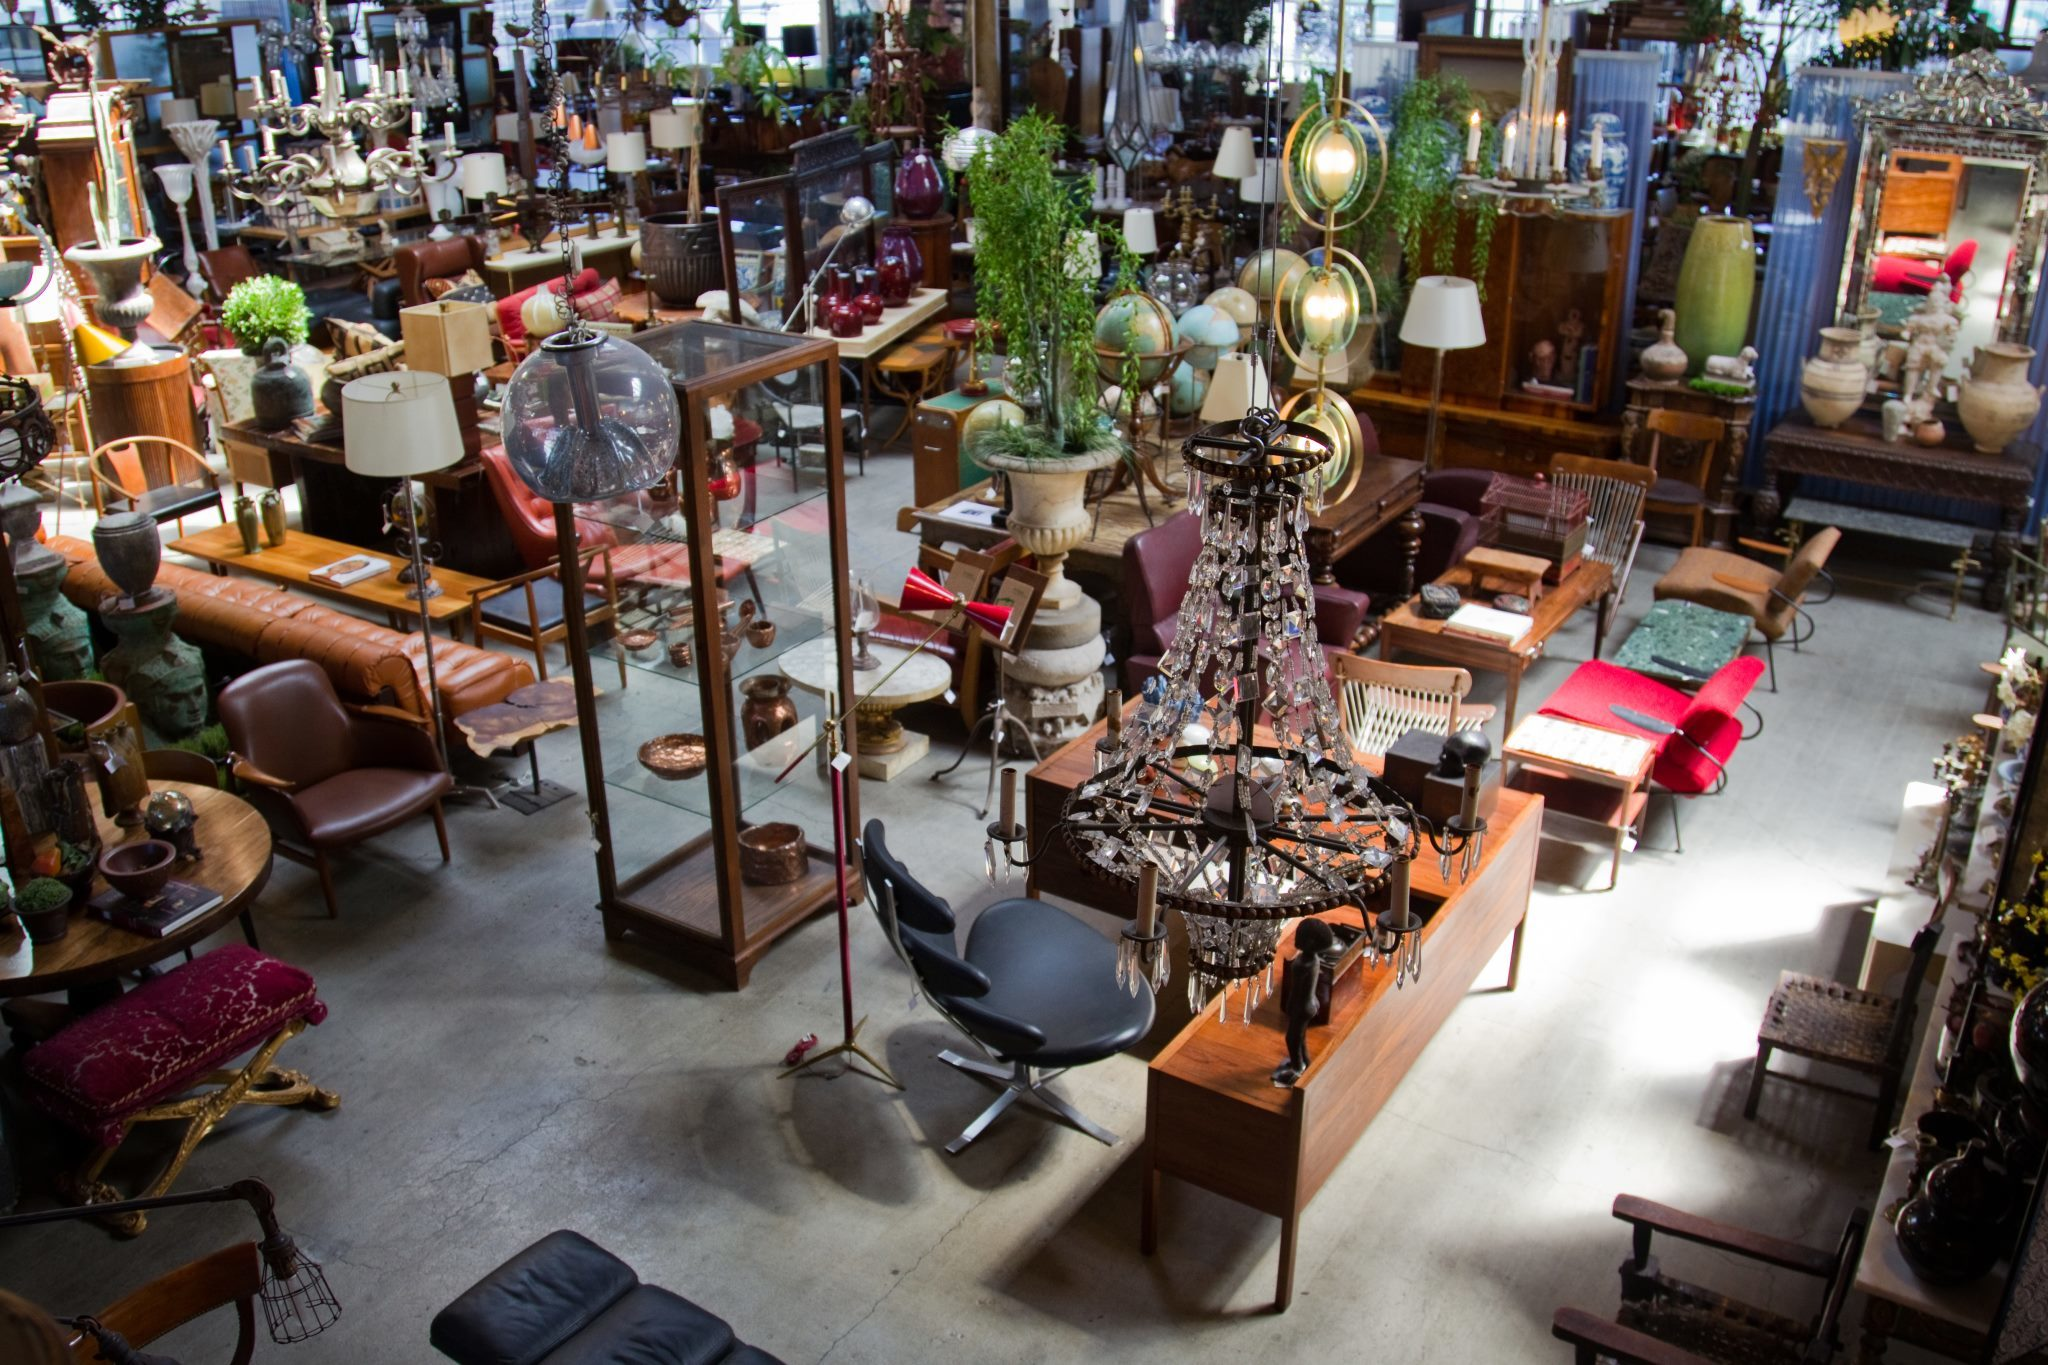 Best antique stores in los angeles for hidden gems Uk home furniture market